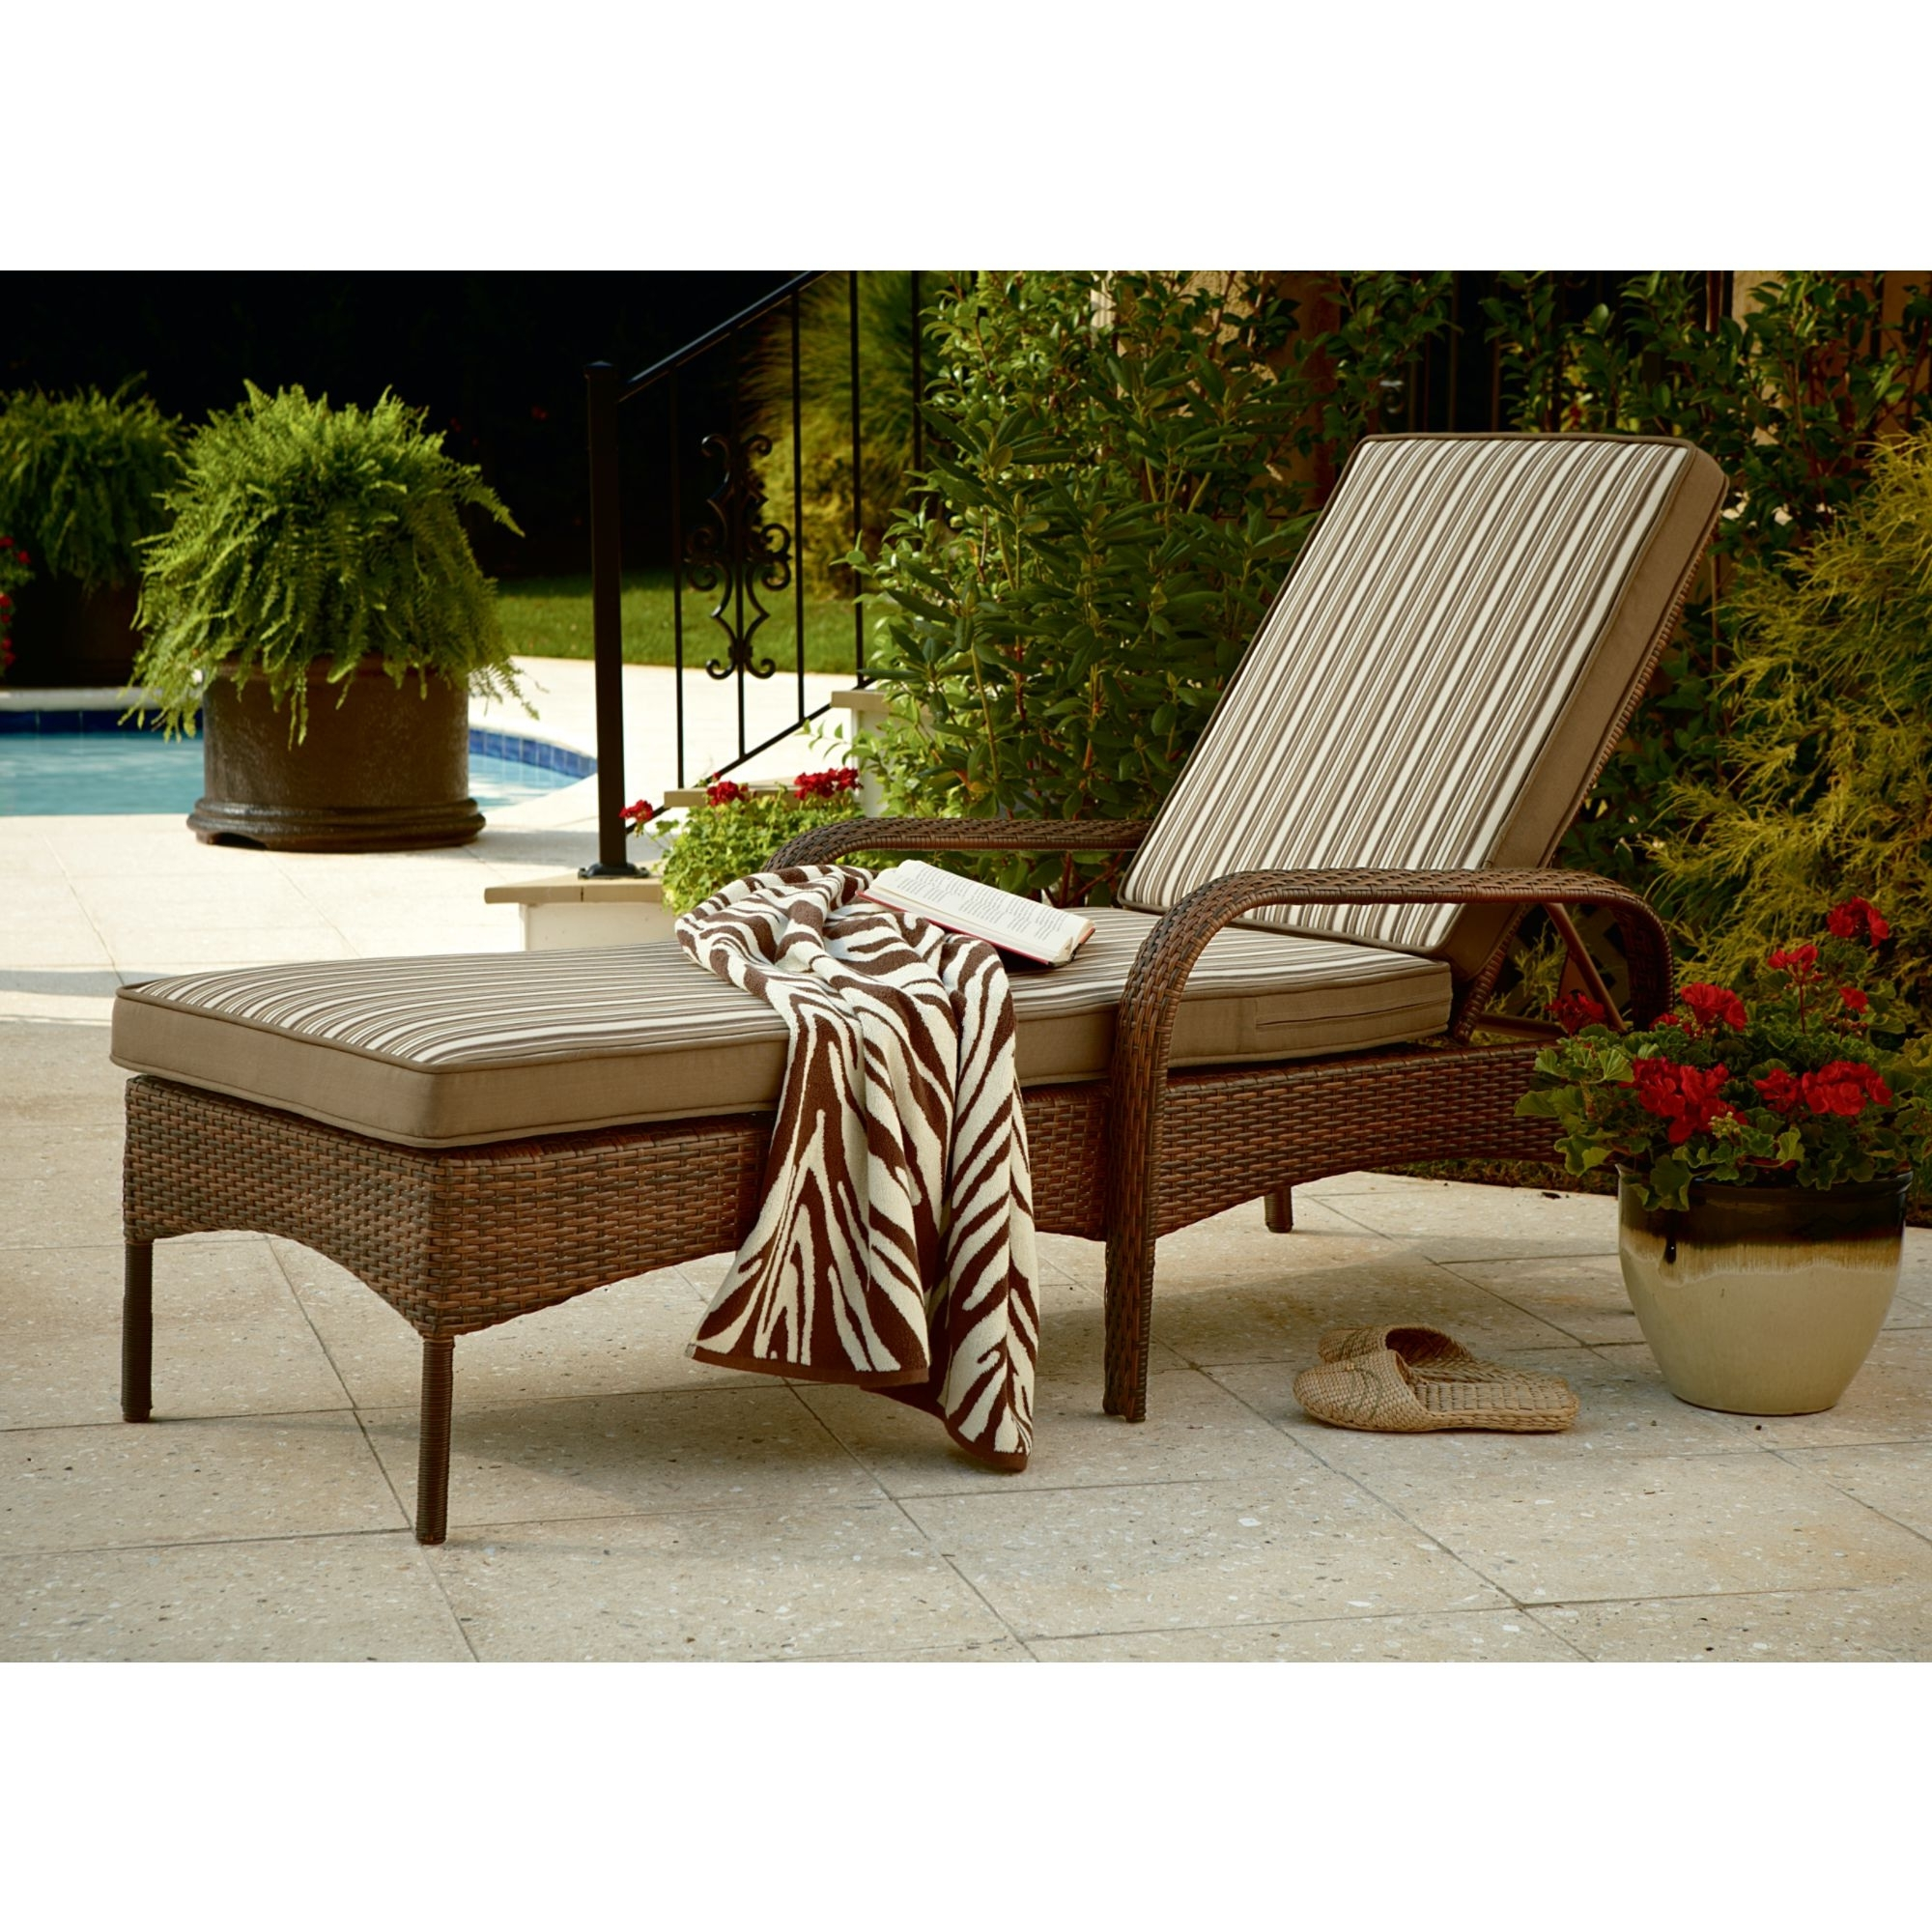 Outdoor Wicker Chaise Lounges Pertaining To Well Known Outdoor : White Chaise Lounge Sofa Outdoor Chaise Lounge Covers (View 8 of 15)